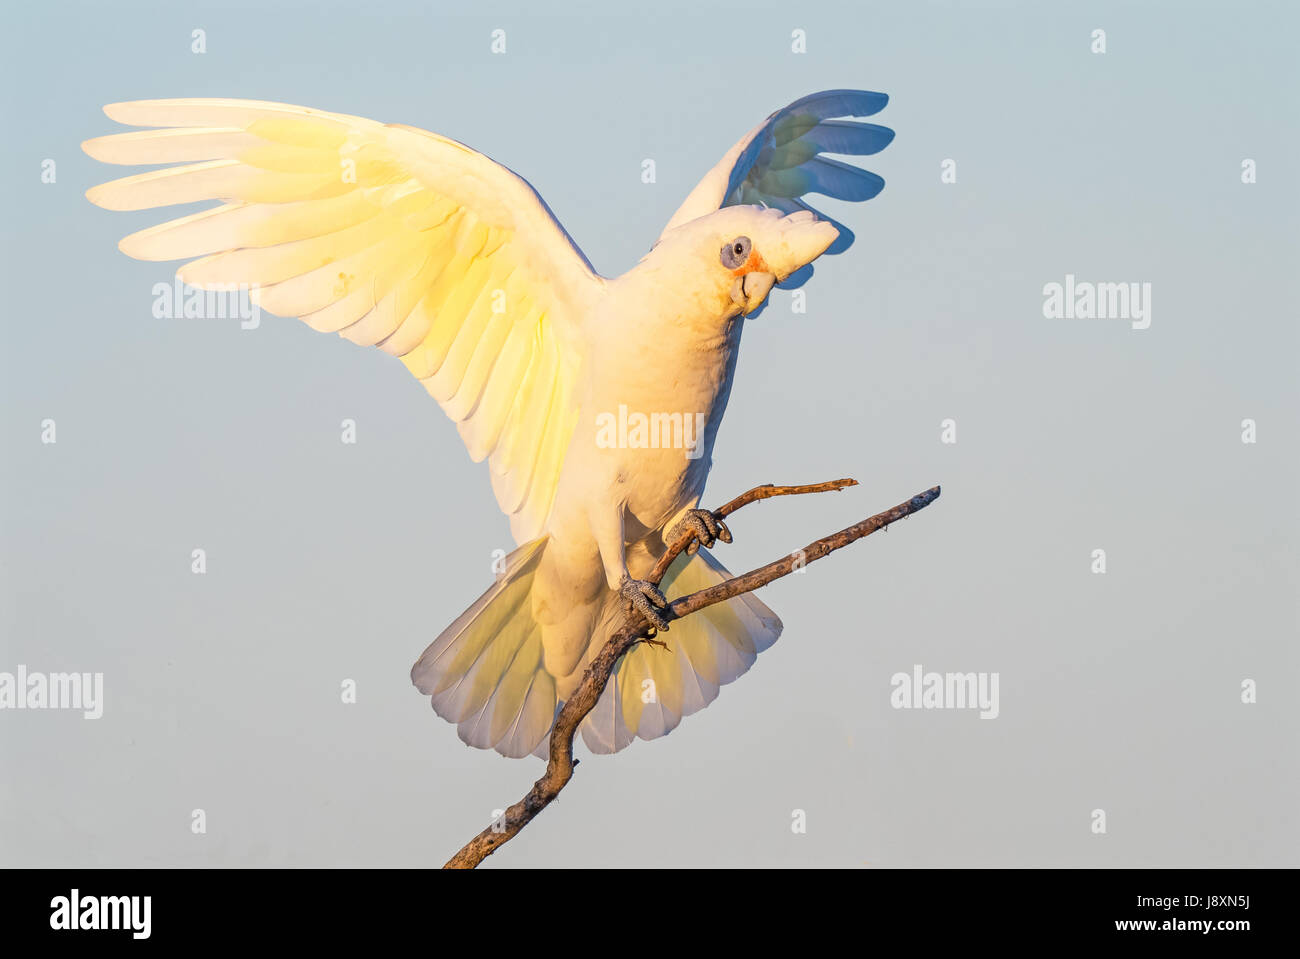 A Little Corella perched on a branch, with wings outstretched, at Herdsman Lake in Perth, Western Australia. - Stock Image